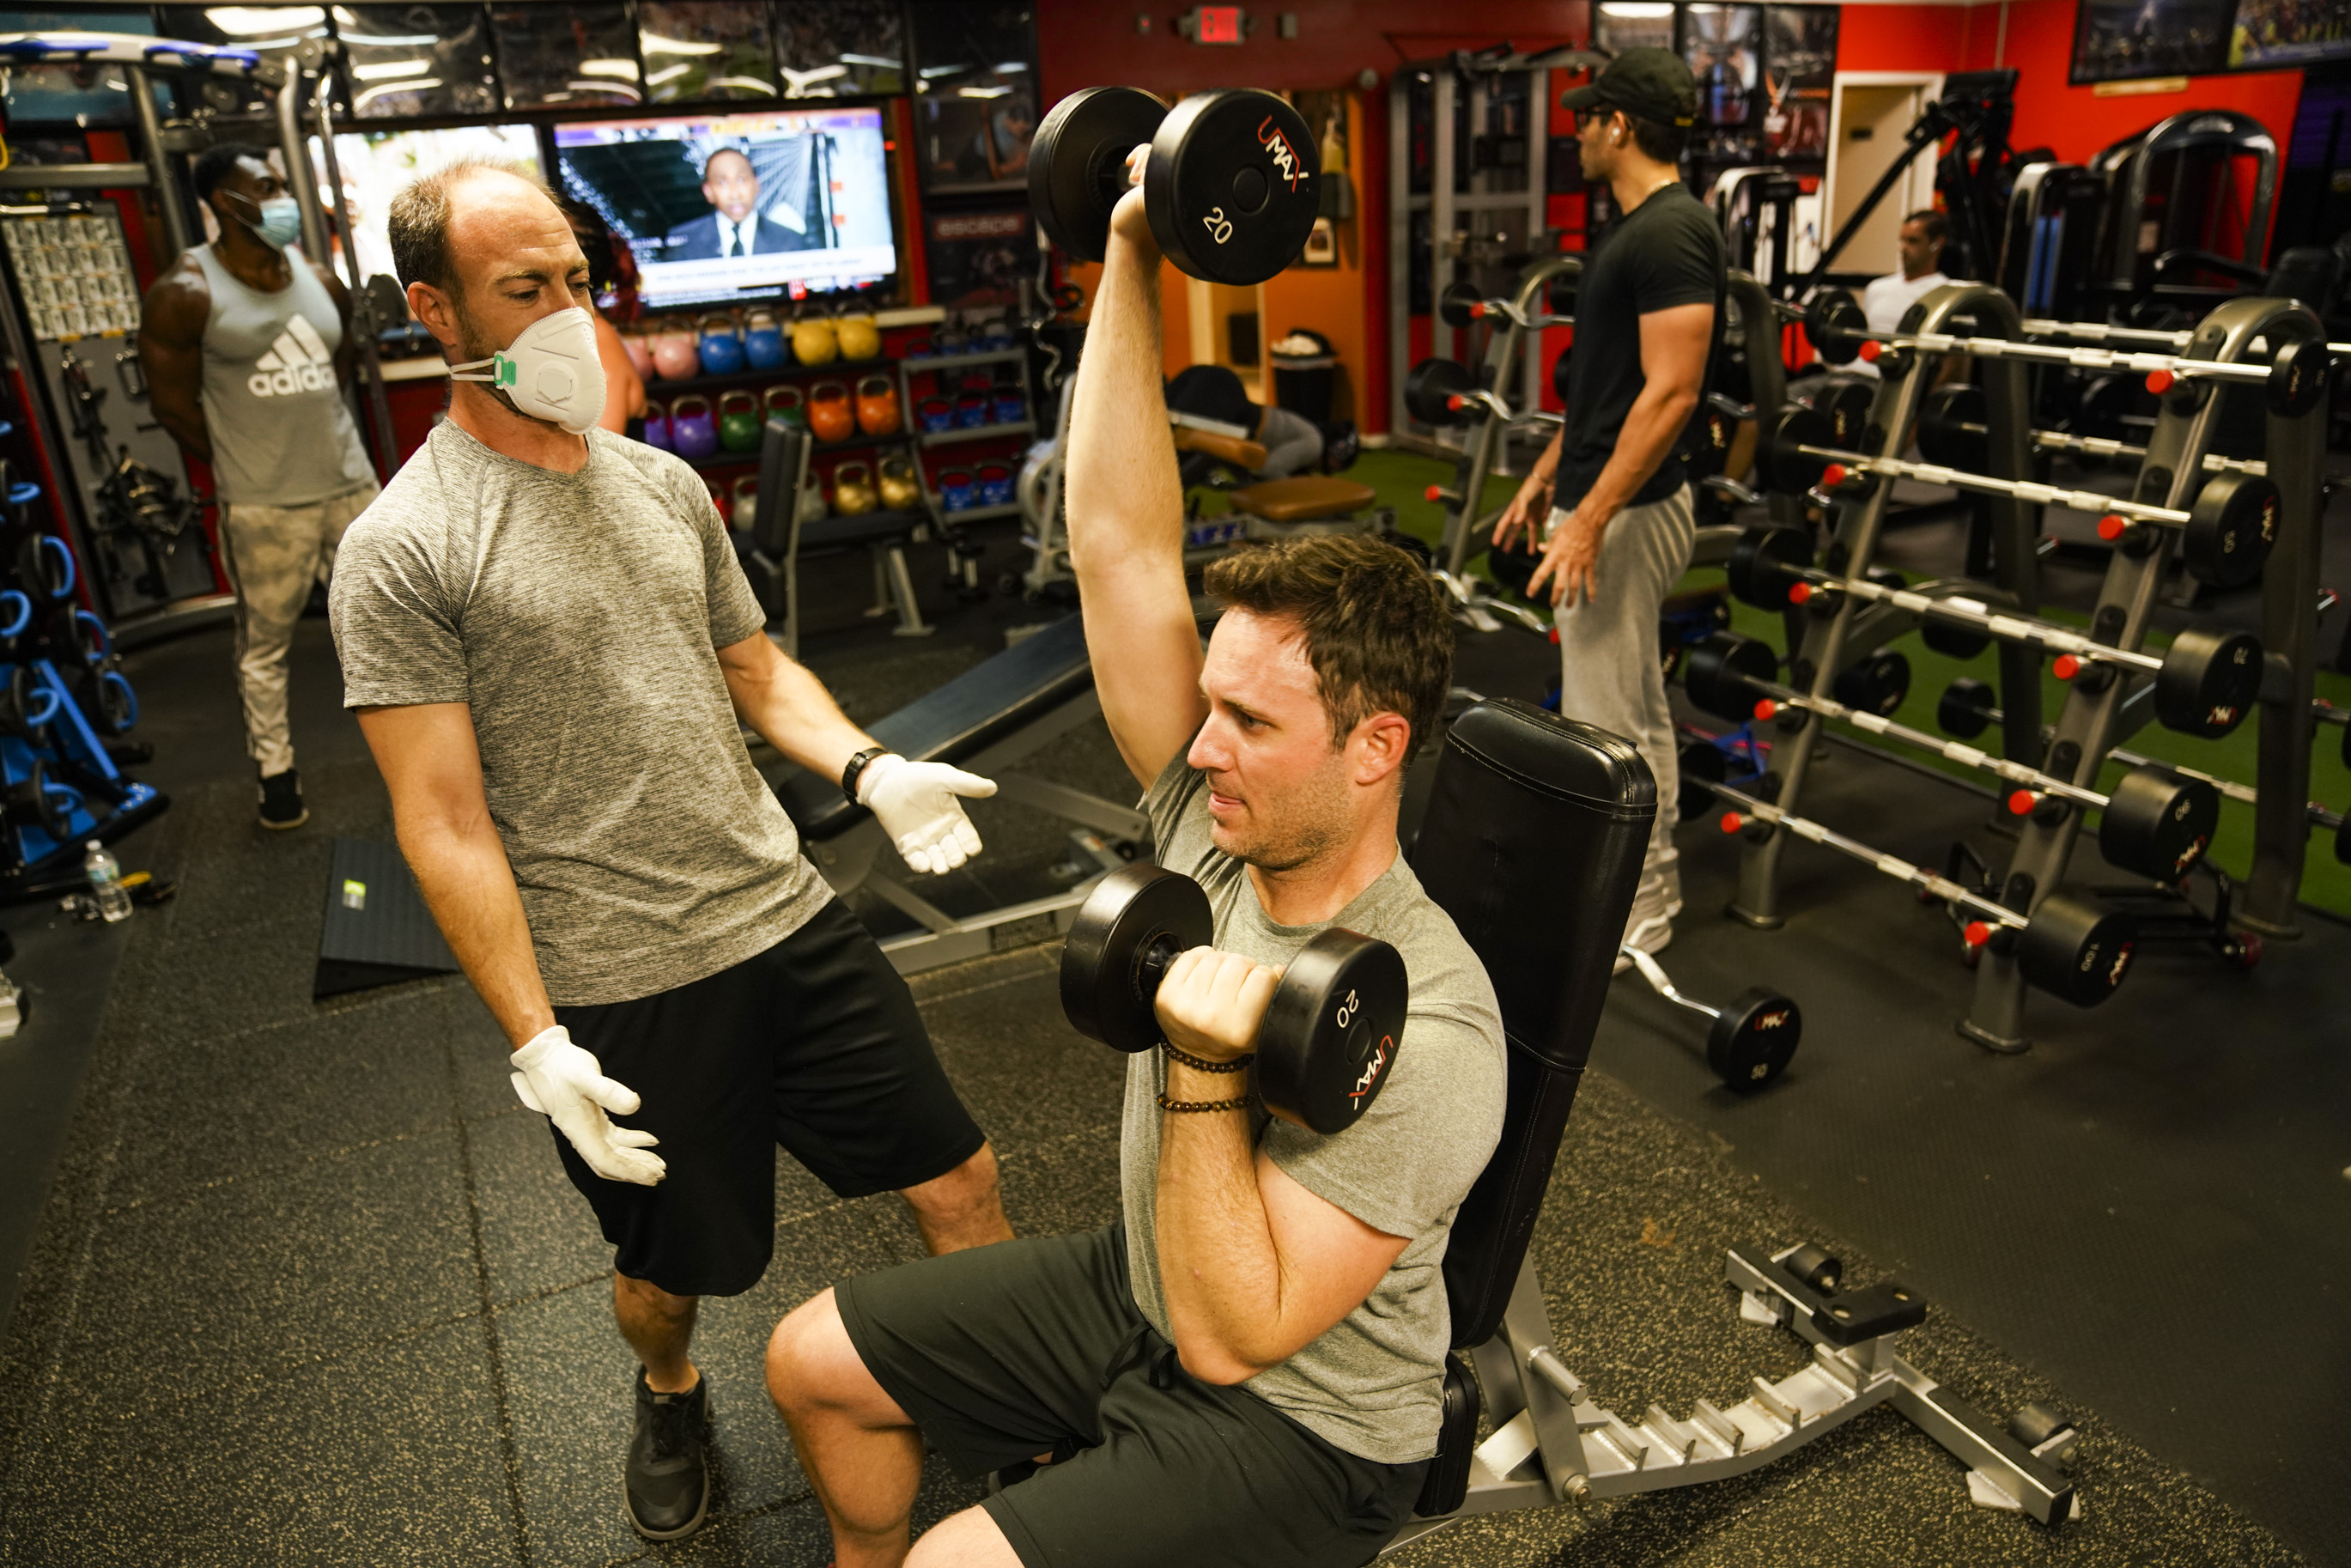 It felt good to be back': Tampa Bay gyms re-open